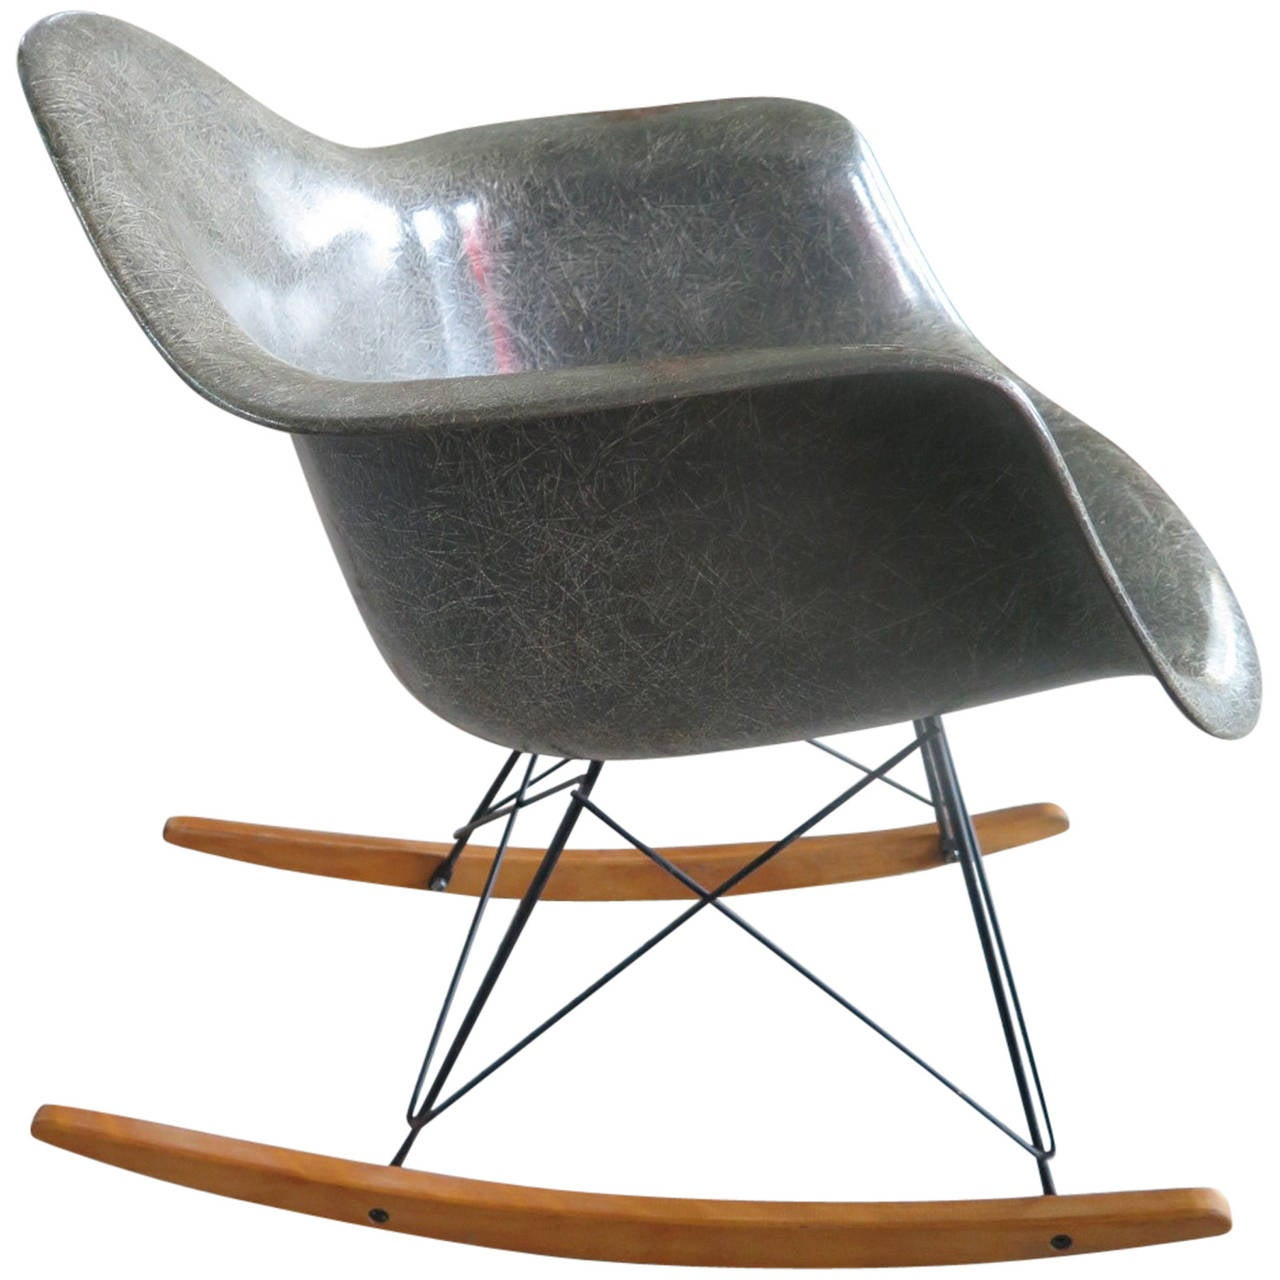 charles eames rocking chair rar early production zenith. Black Bedroom Furniture Sets. Home Design Ideas